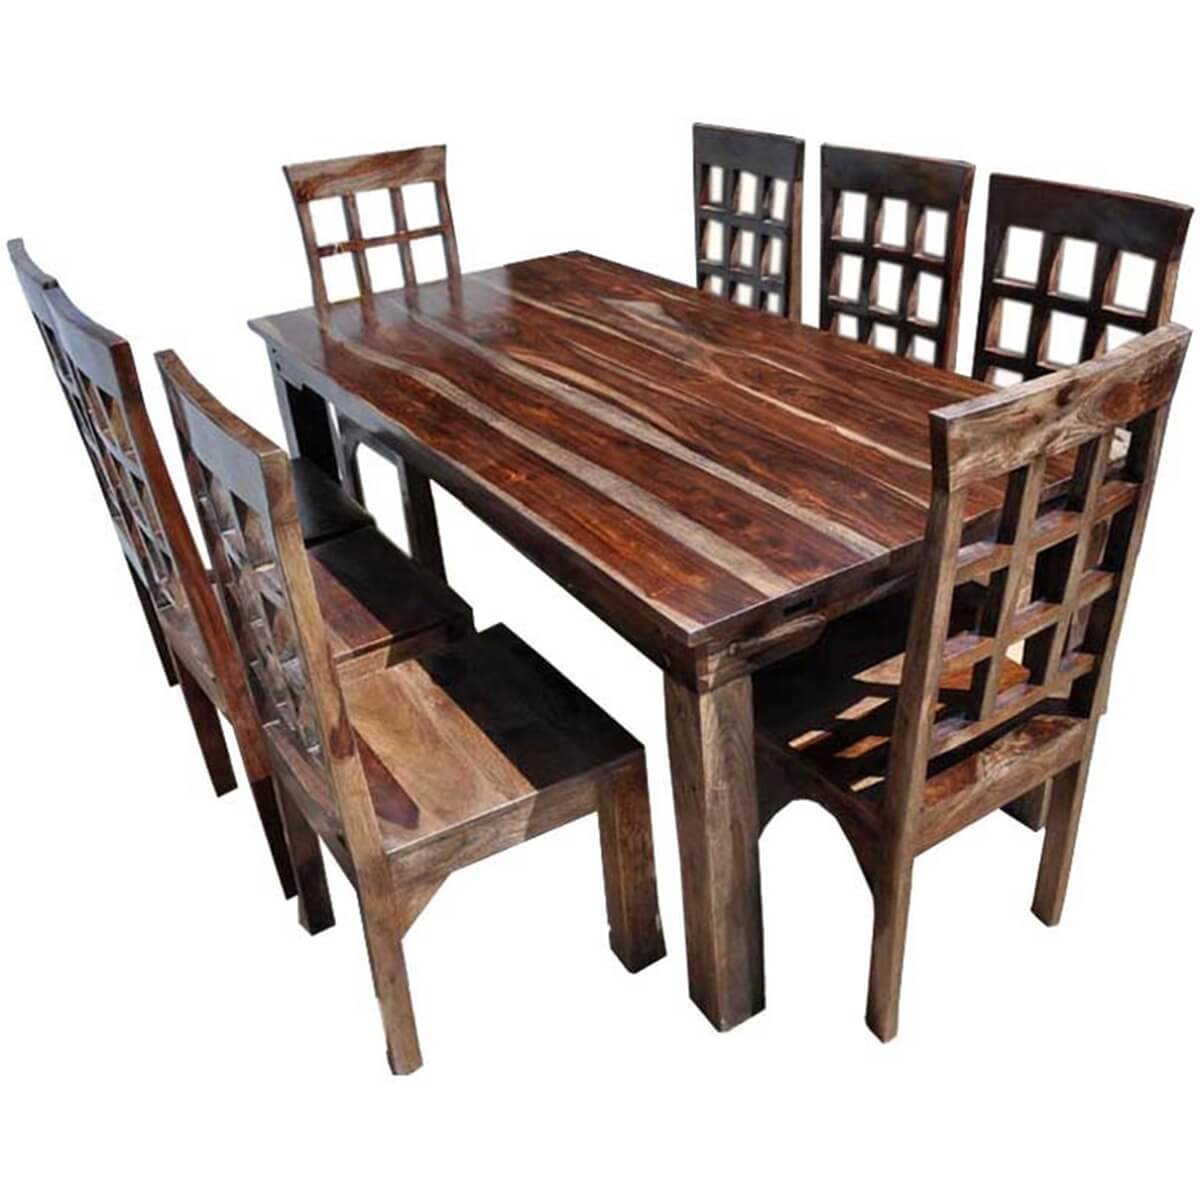 Portland rustic furniture dining room table chair set w for Table and chair set